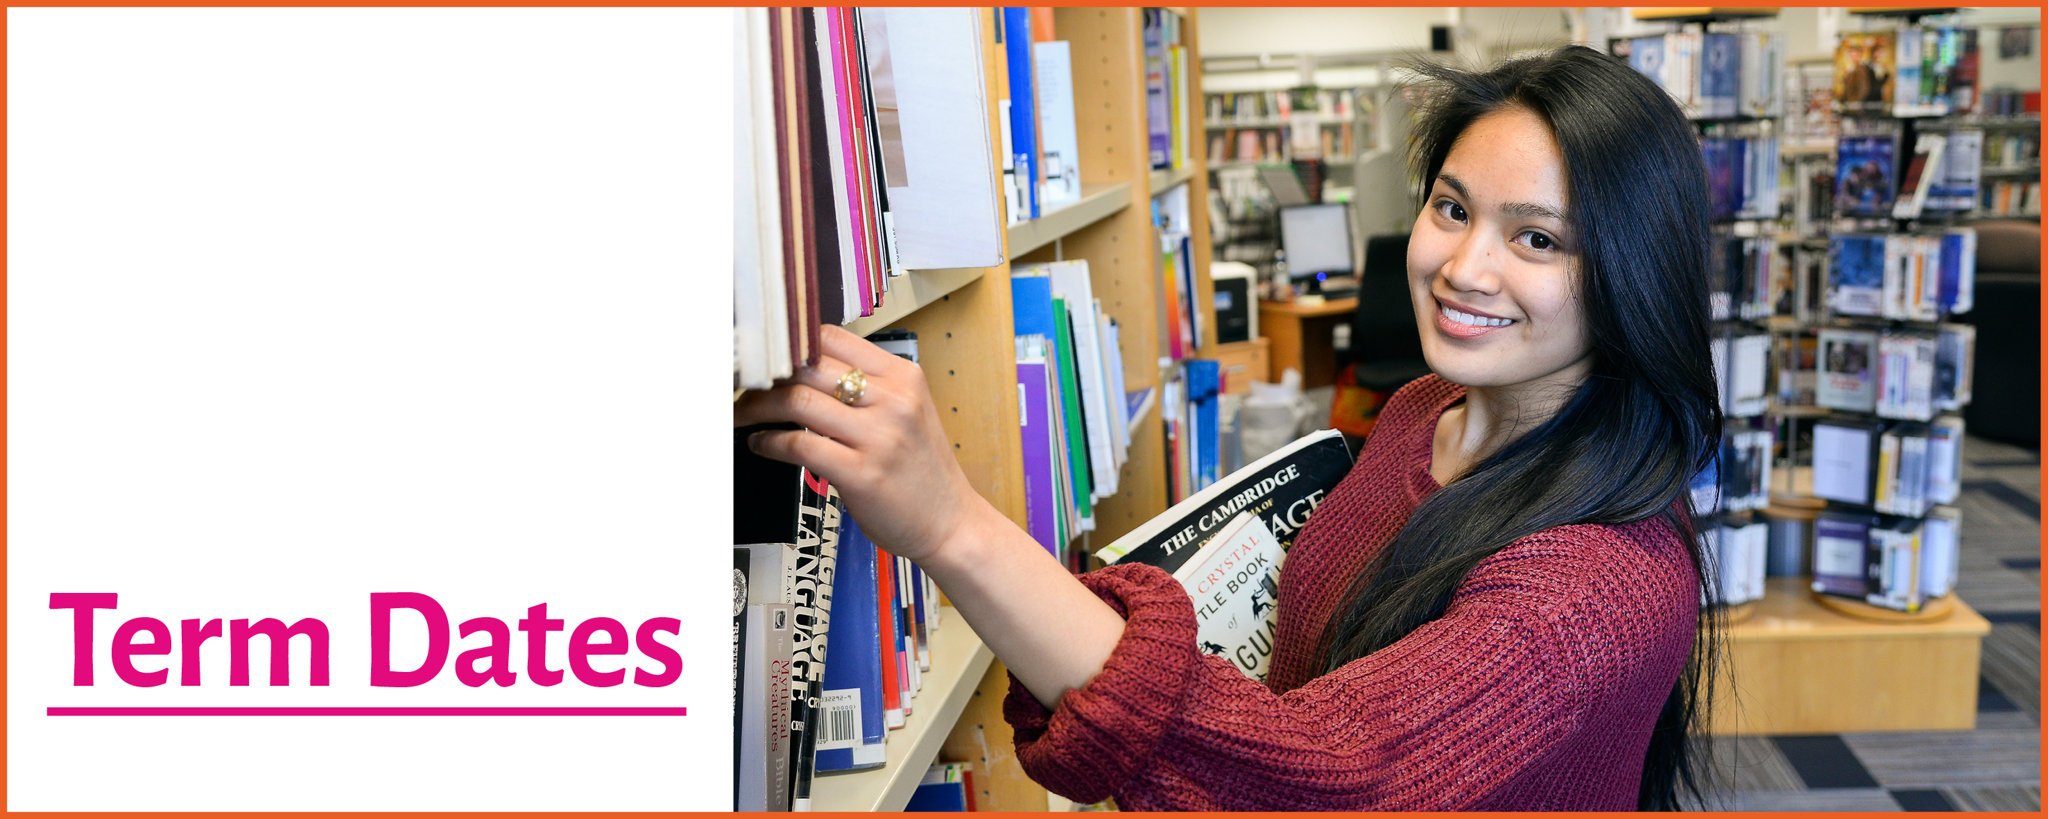 A picture of a student in the HNC library